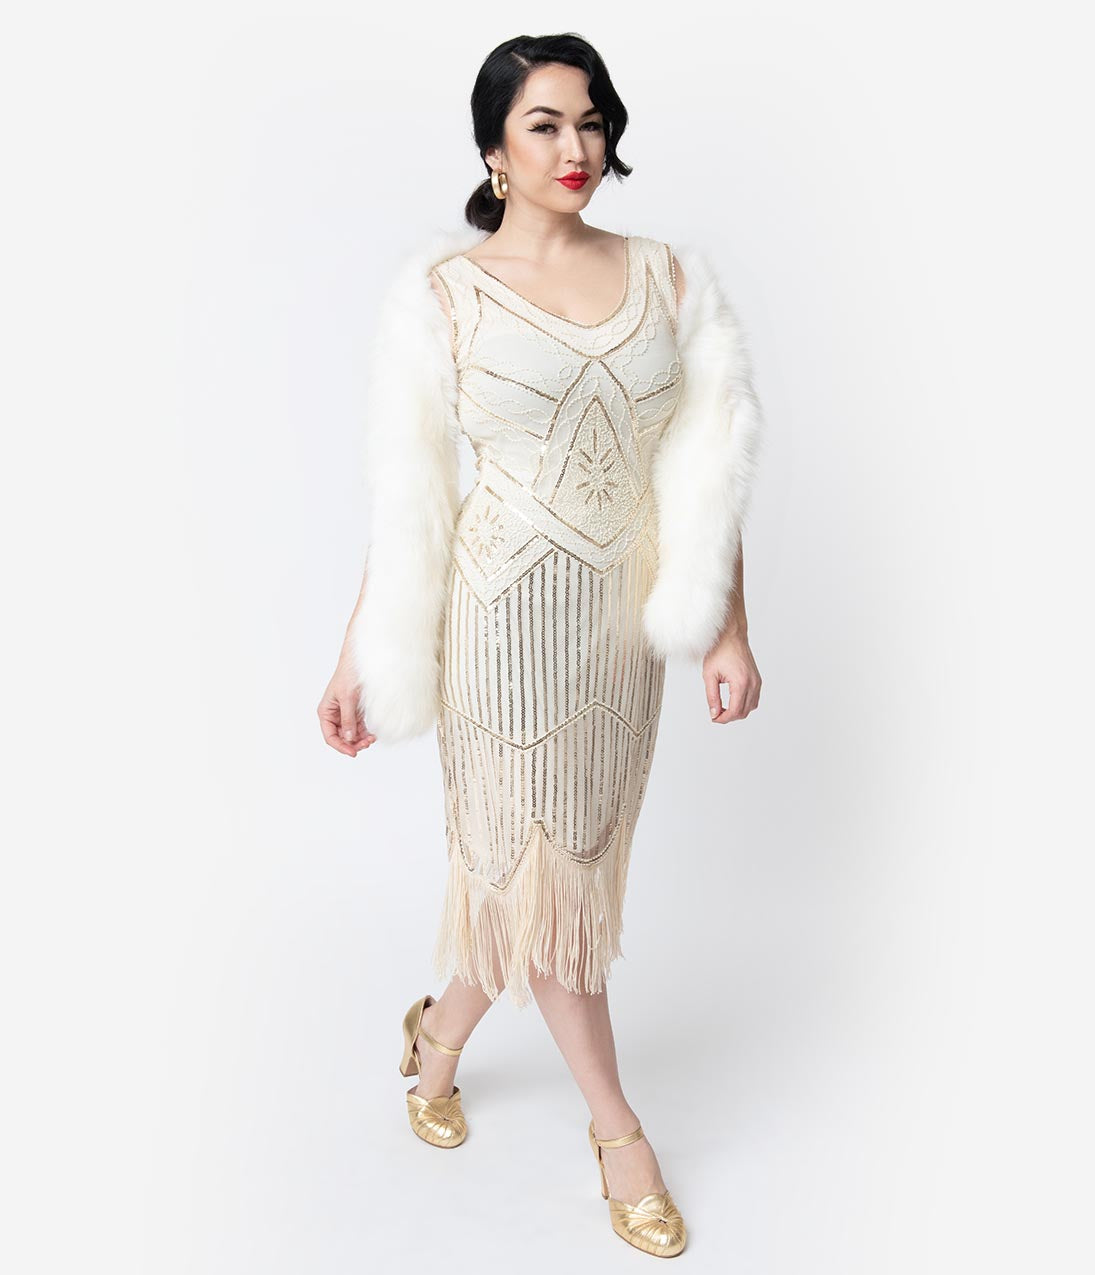 Vintage Style Wedding Dresses, Vintage Inspired Wedding Gowns Unique Vintage Cream  Gold Beaded Leonie Fringe Flapper Dress $98.00 AT vintagedancer.com